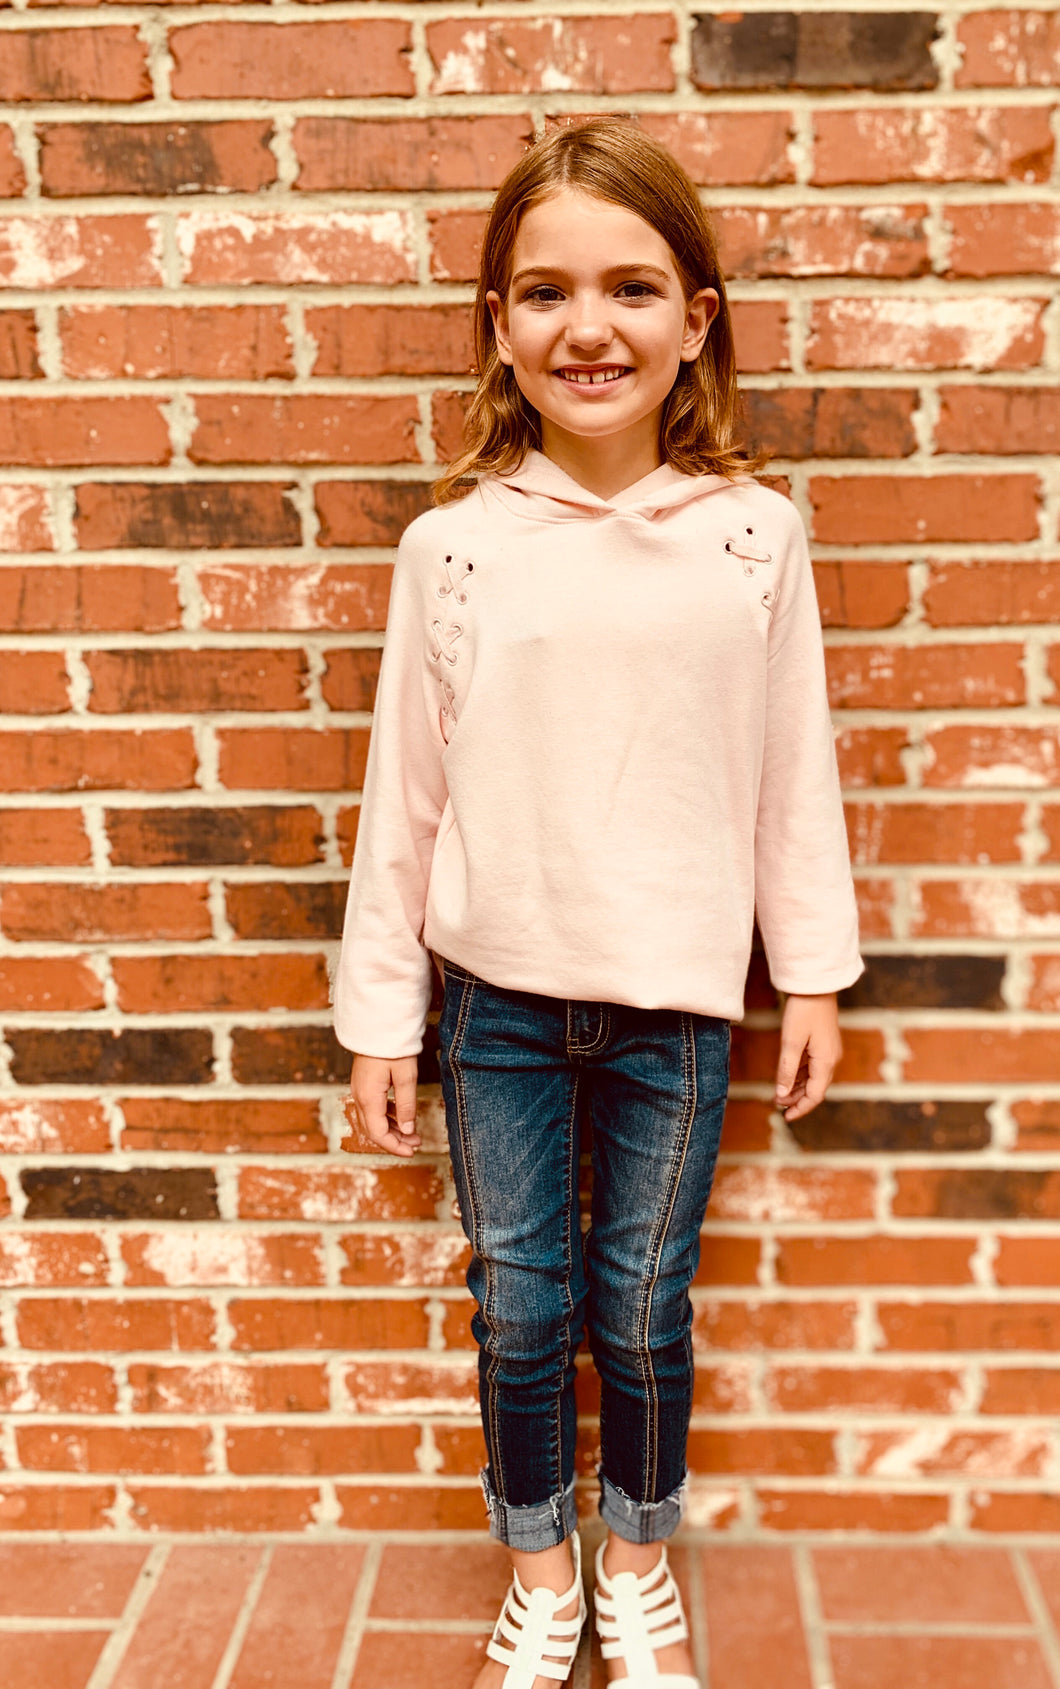 Designer Jeans for Kids, select sizes Girls and Boys >>